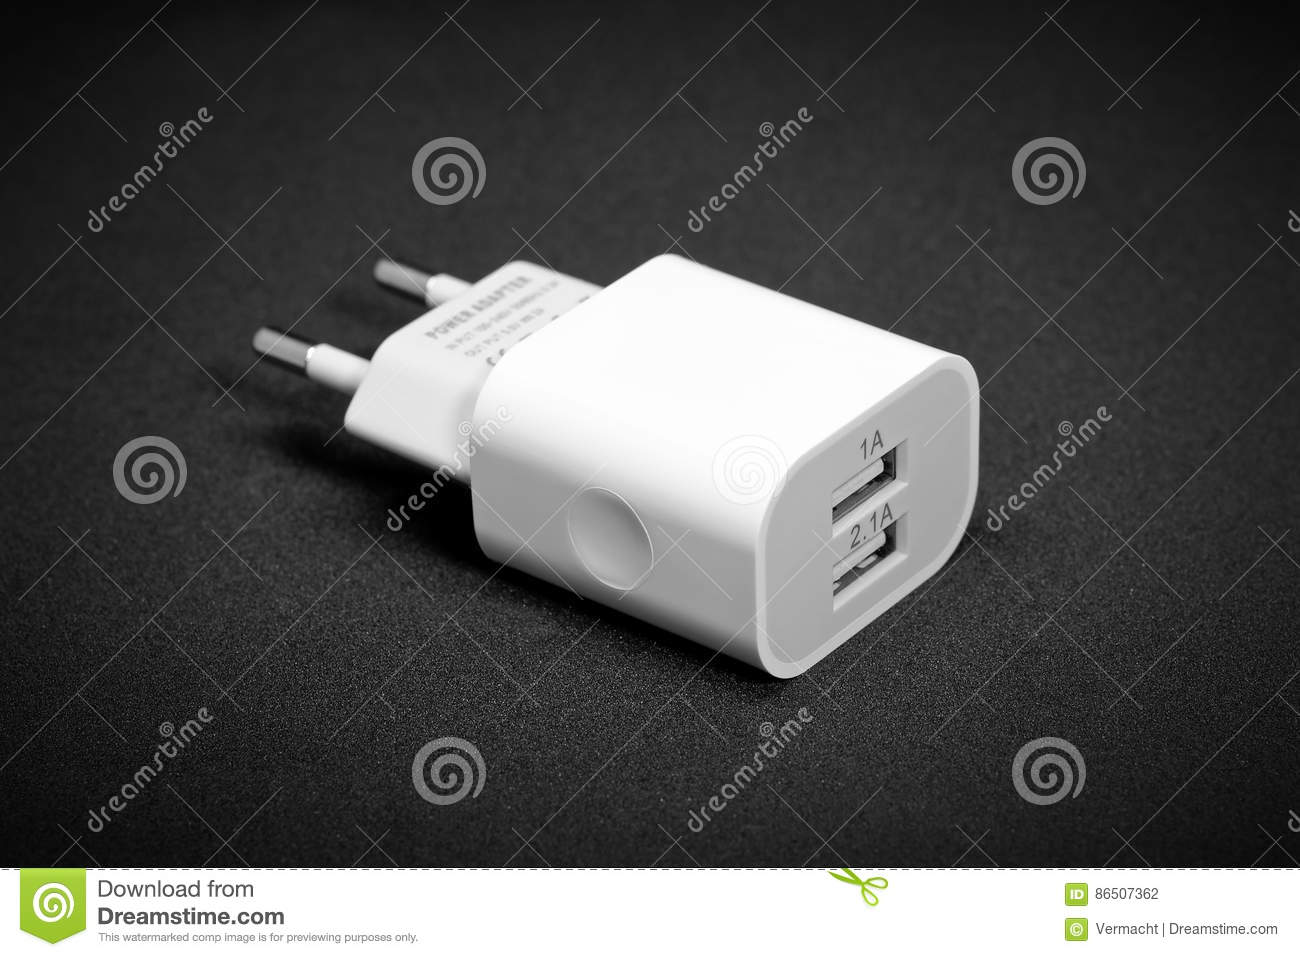 Charger with two USB connectors